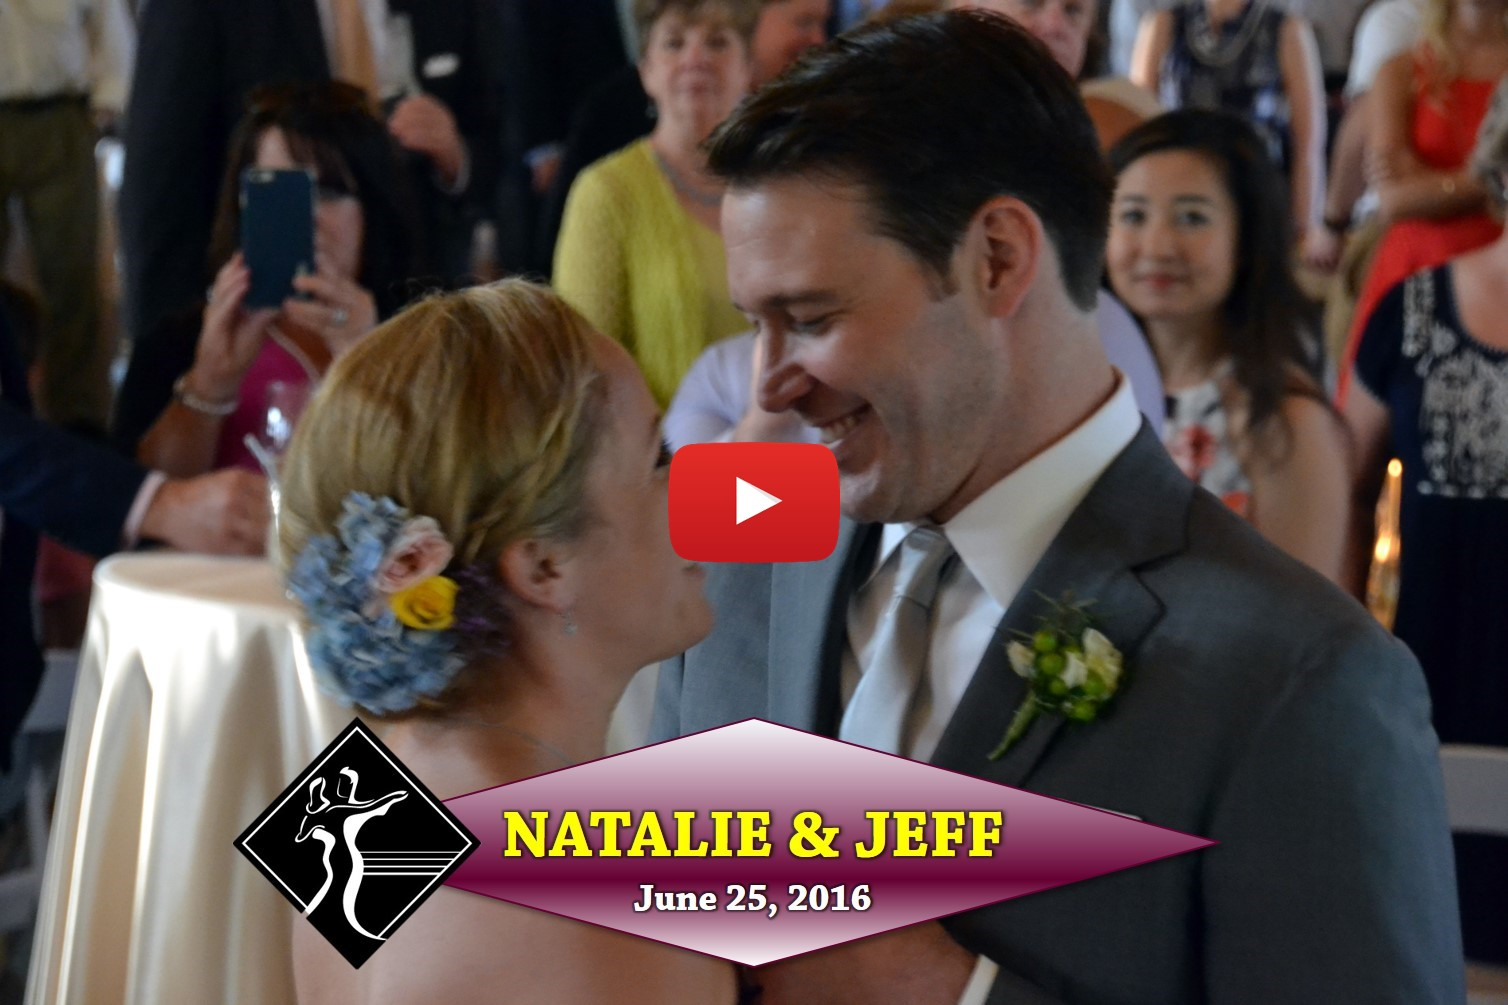 Natalie-Jeff-video-cover-button.jpg